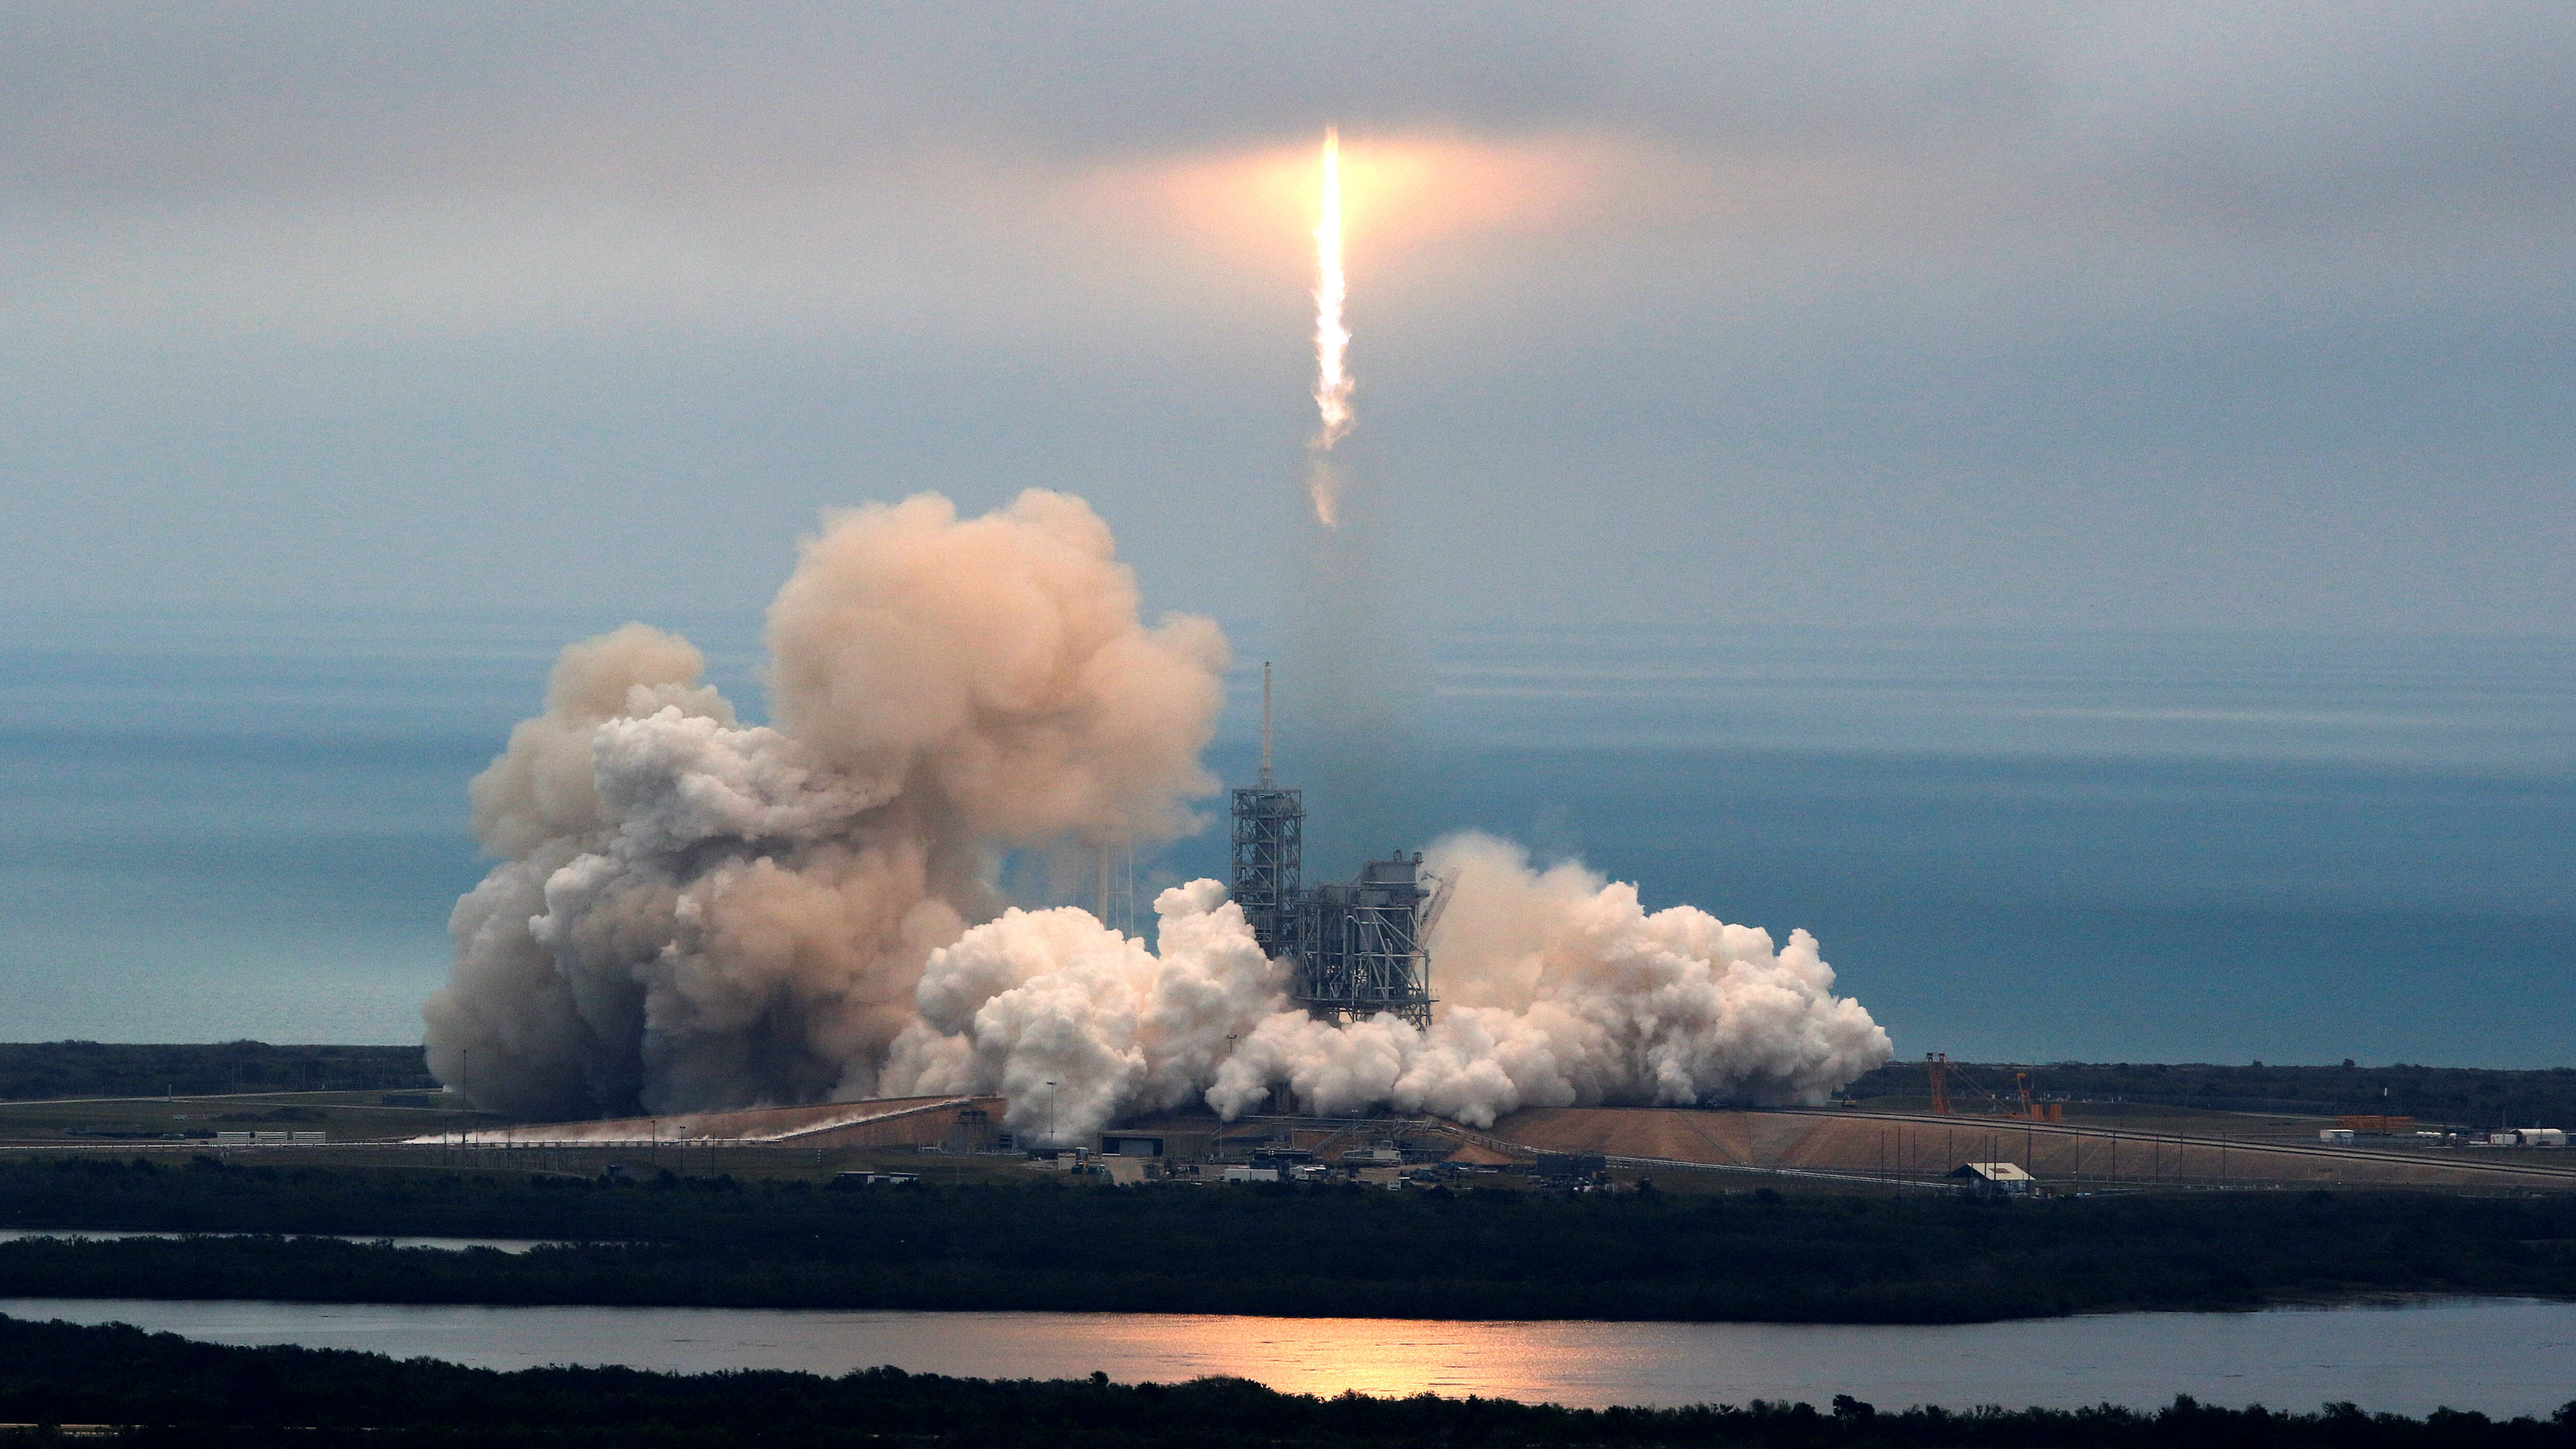 A rocket launch into space traveling to the international space station.